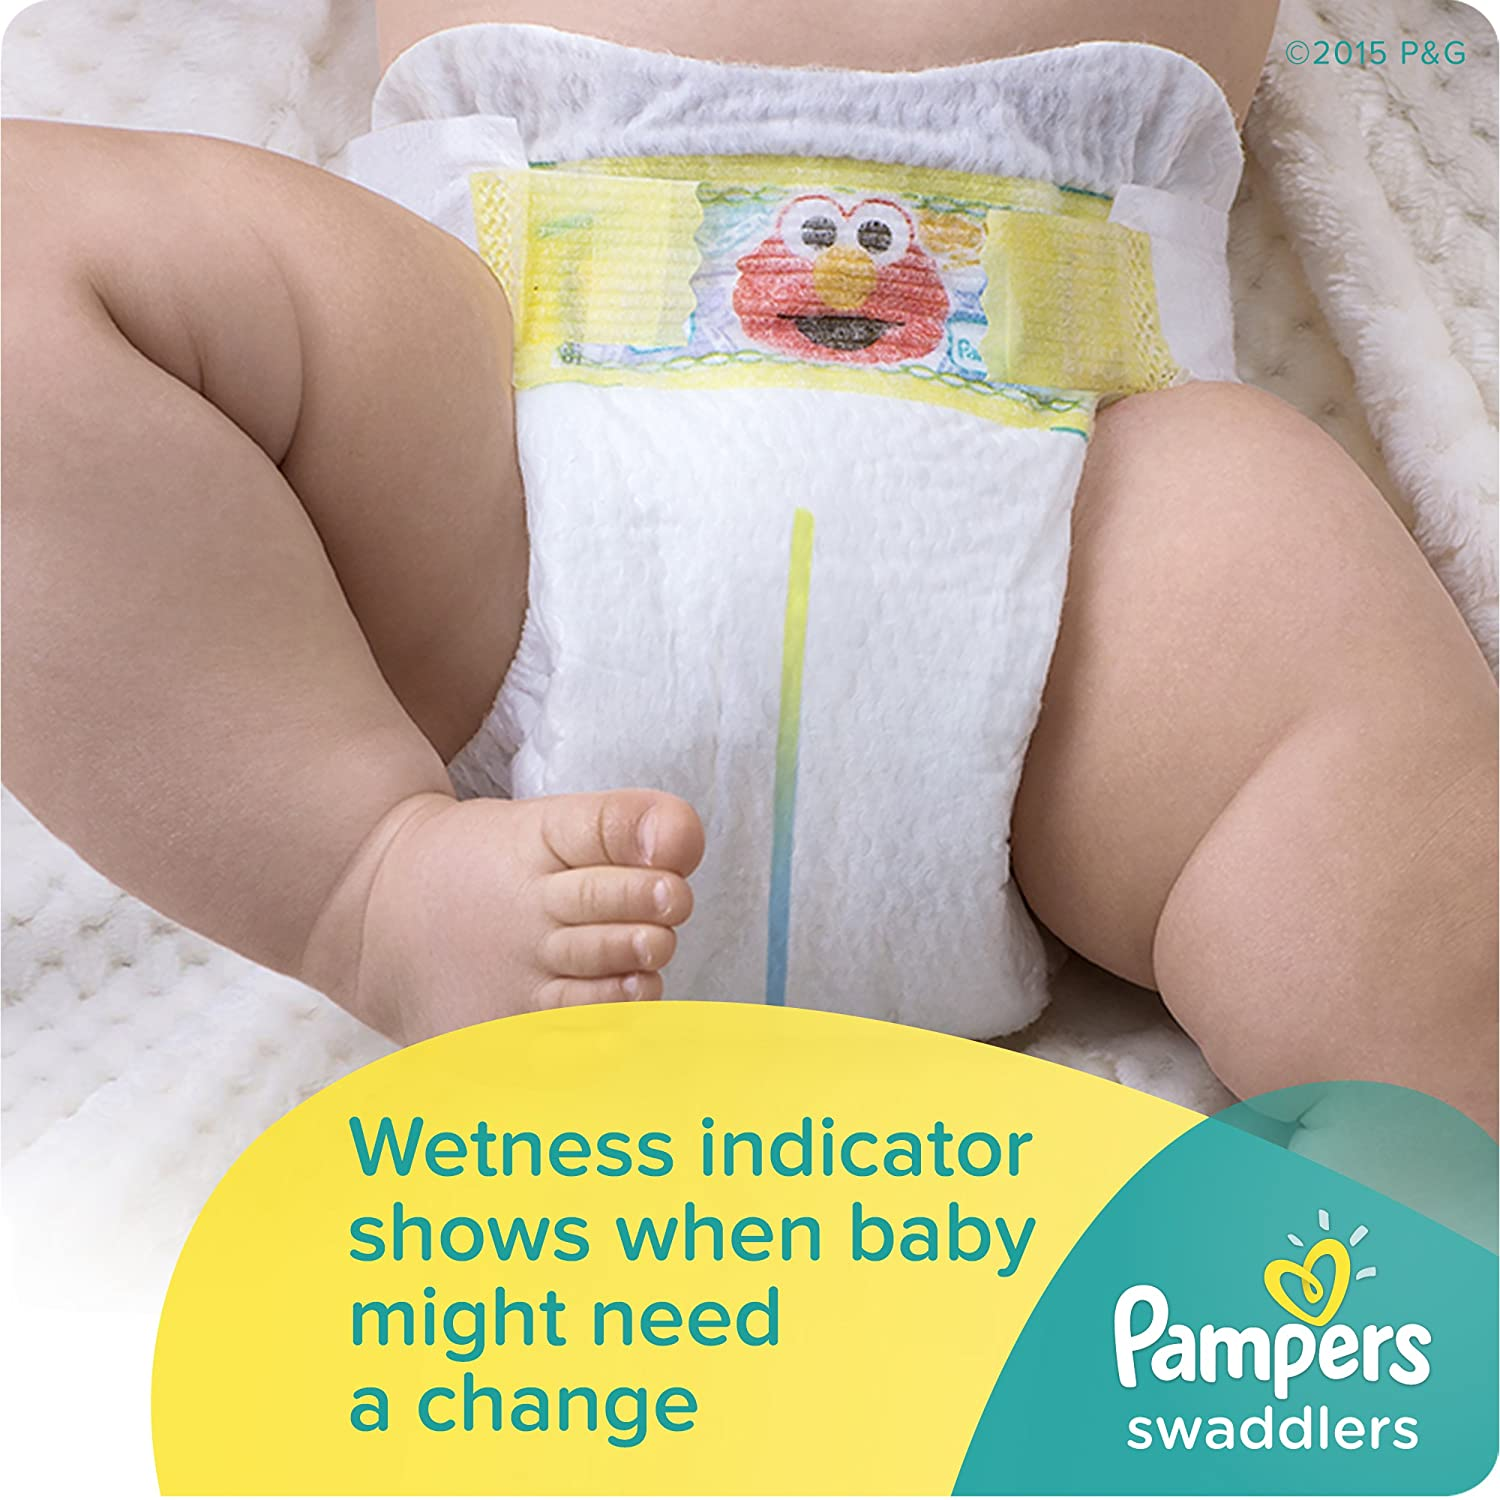 Amazon pampers swaddlers disposable diapers size 5 124 count amazon pampers swaddlers disposable diapers size 5 124 count economy pack plus health personal care nvjuhfo Image collections